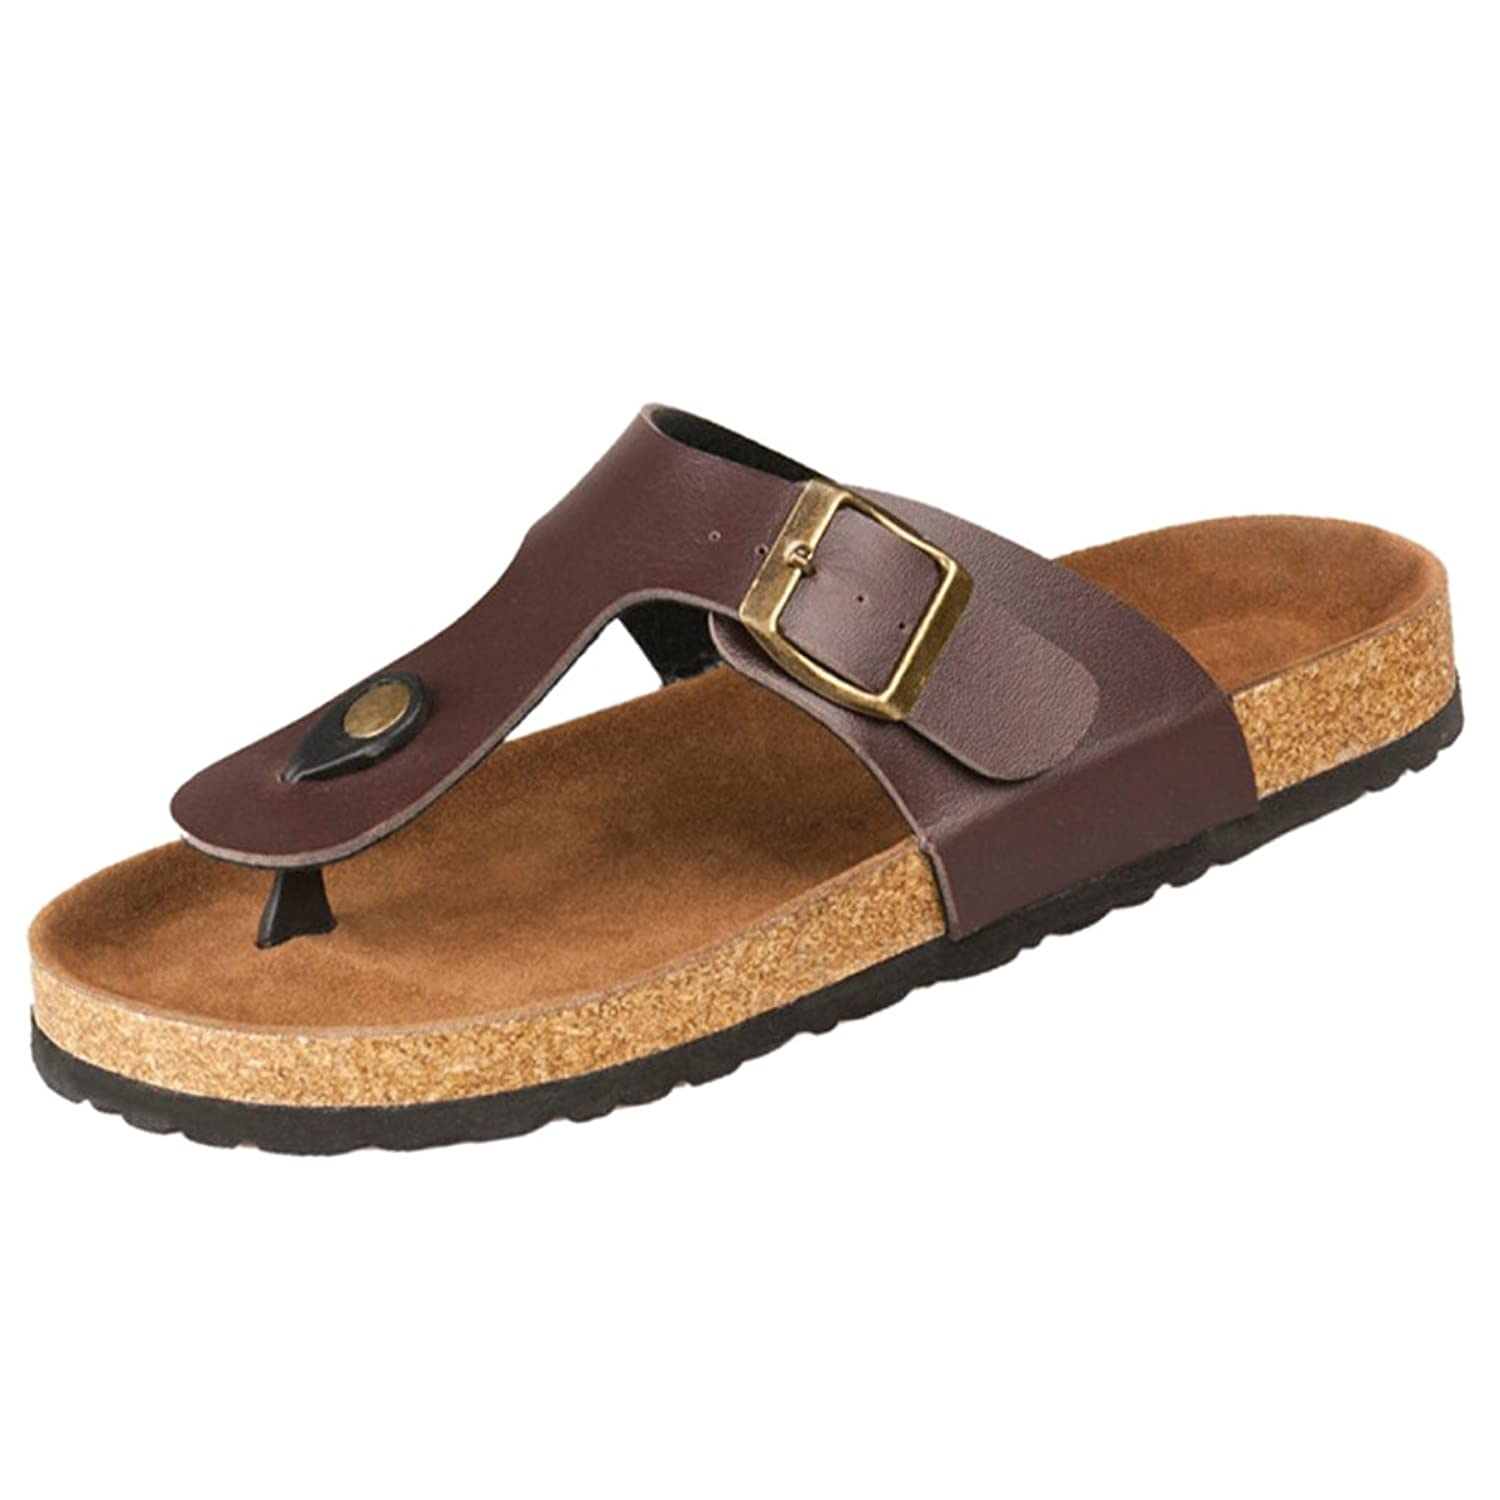 SODIAL(R)New cork flats sandals men and women summer flip flops unisex casual slippers shoes size 7 Brown